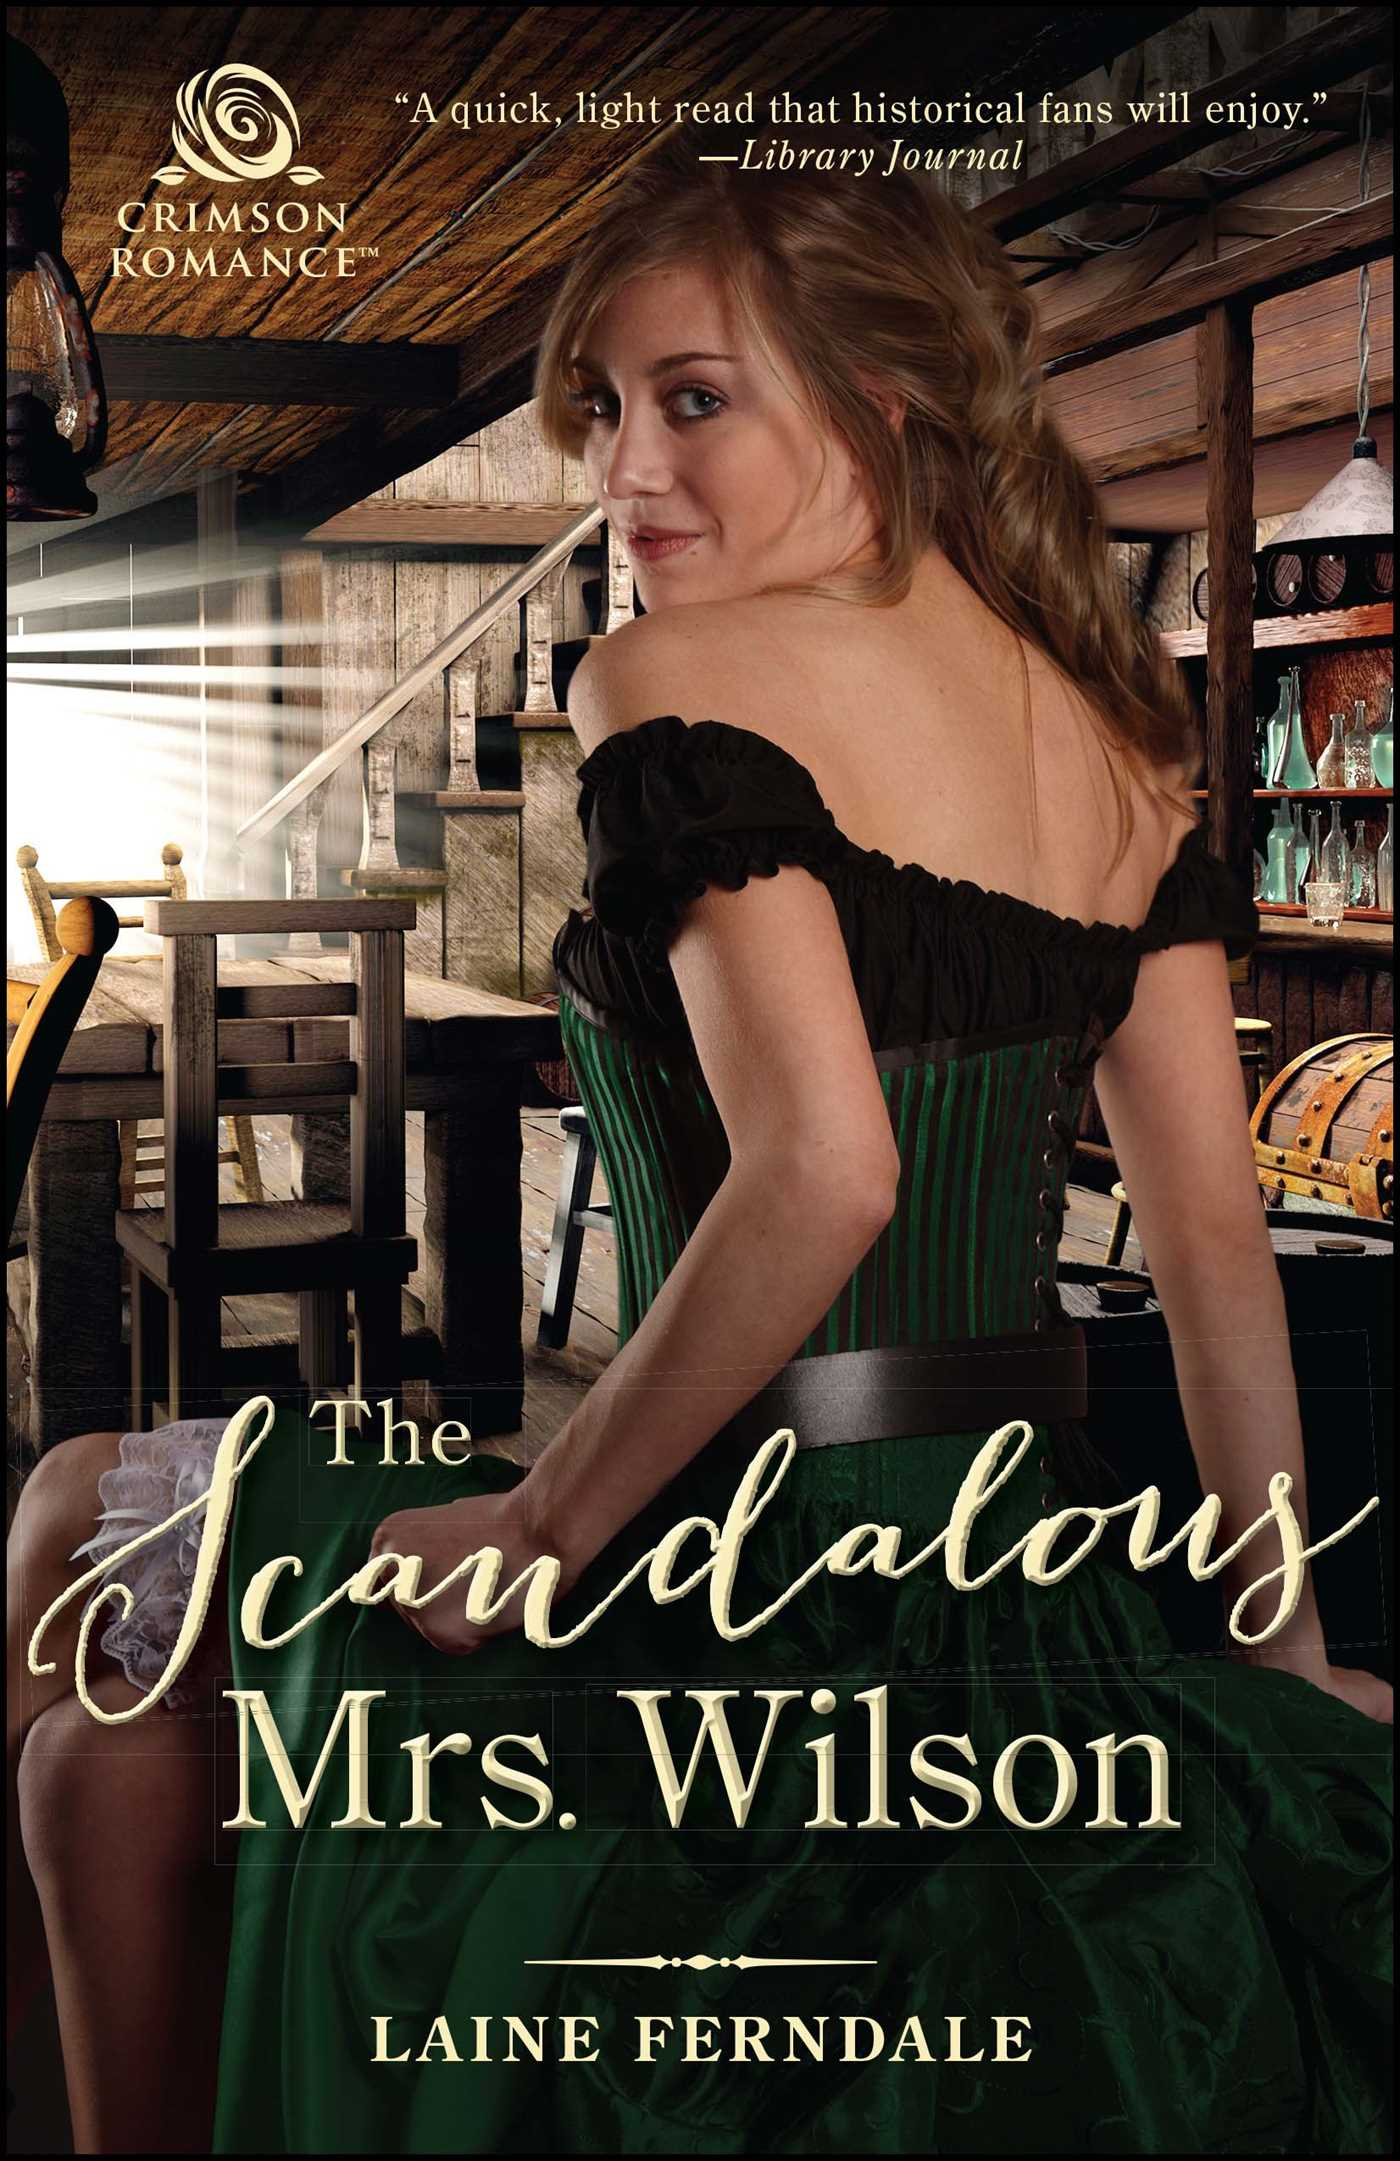 The scandalous mrs wilson 9781507204788 hr